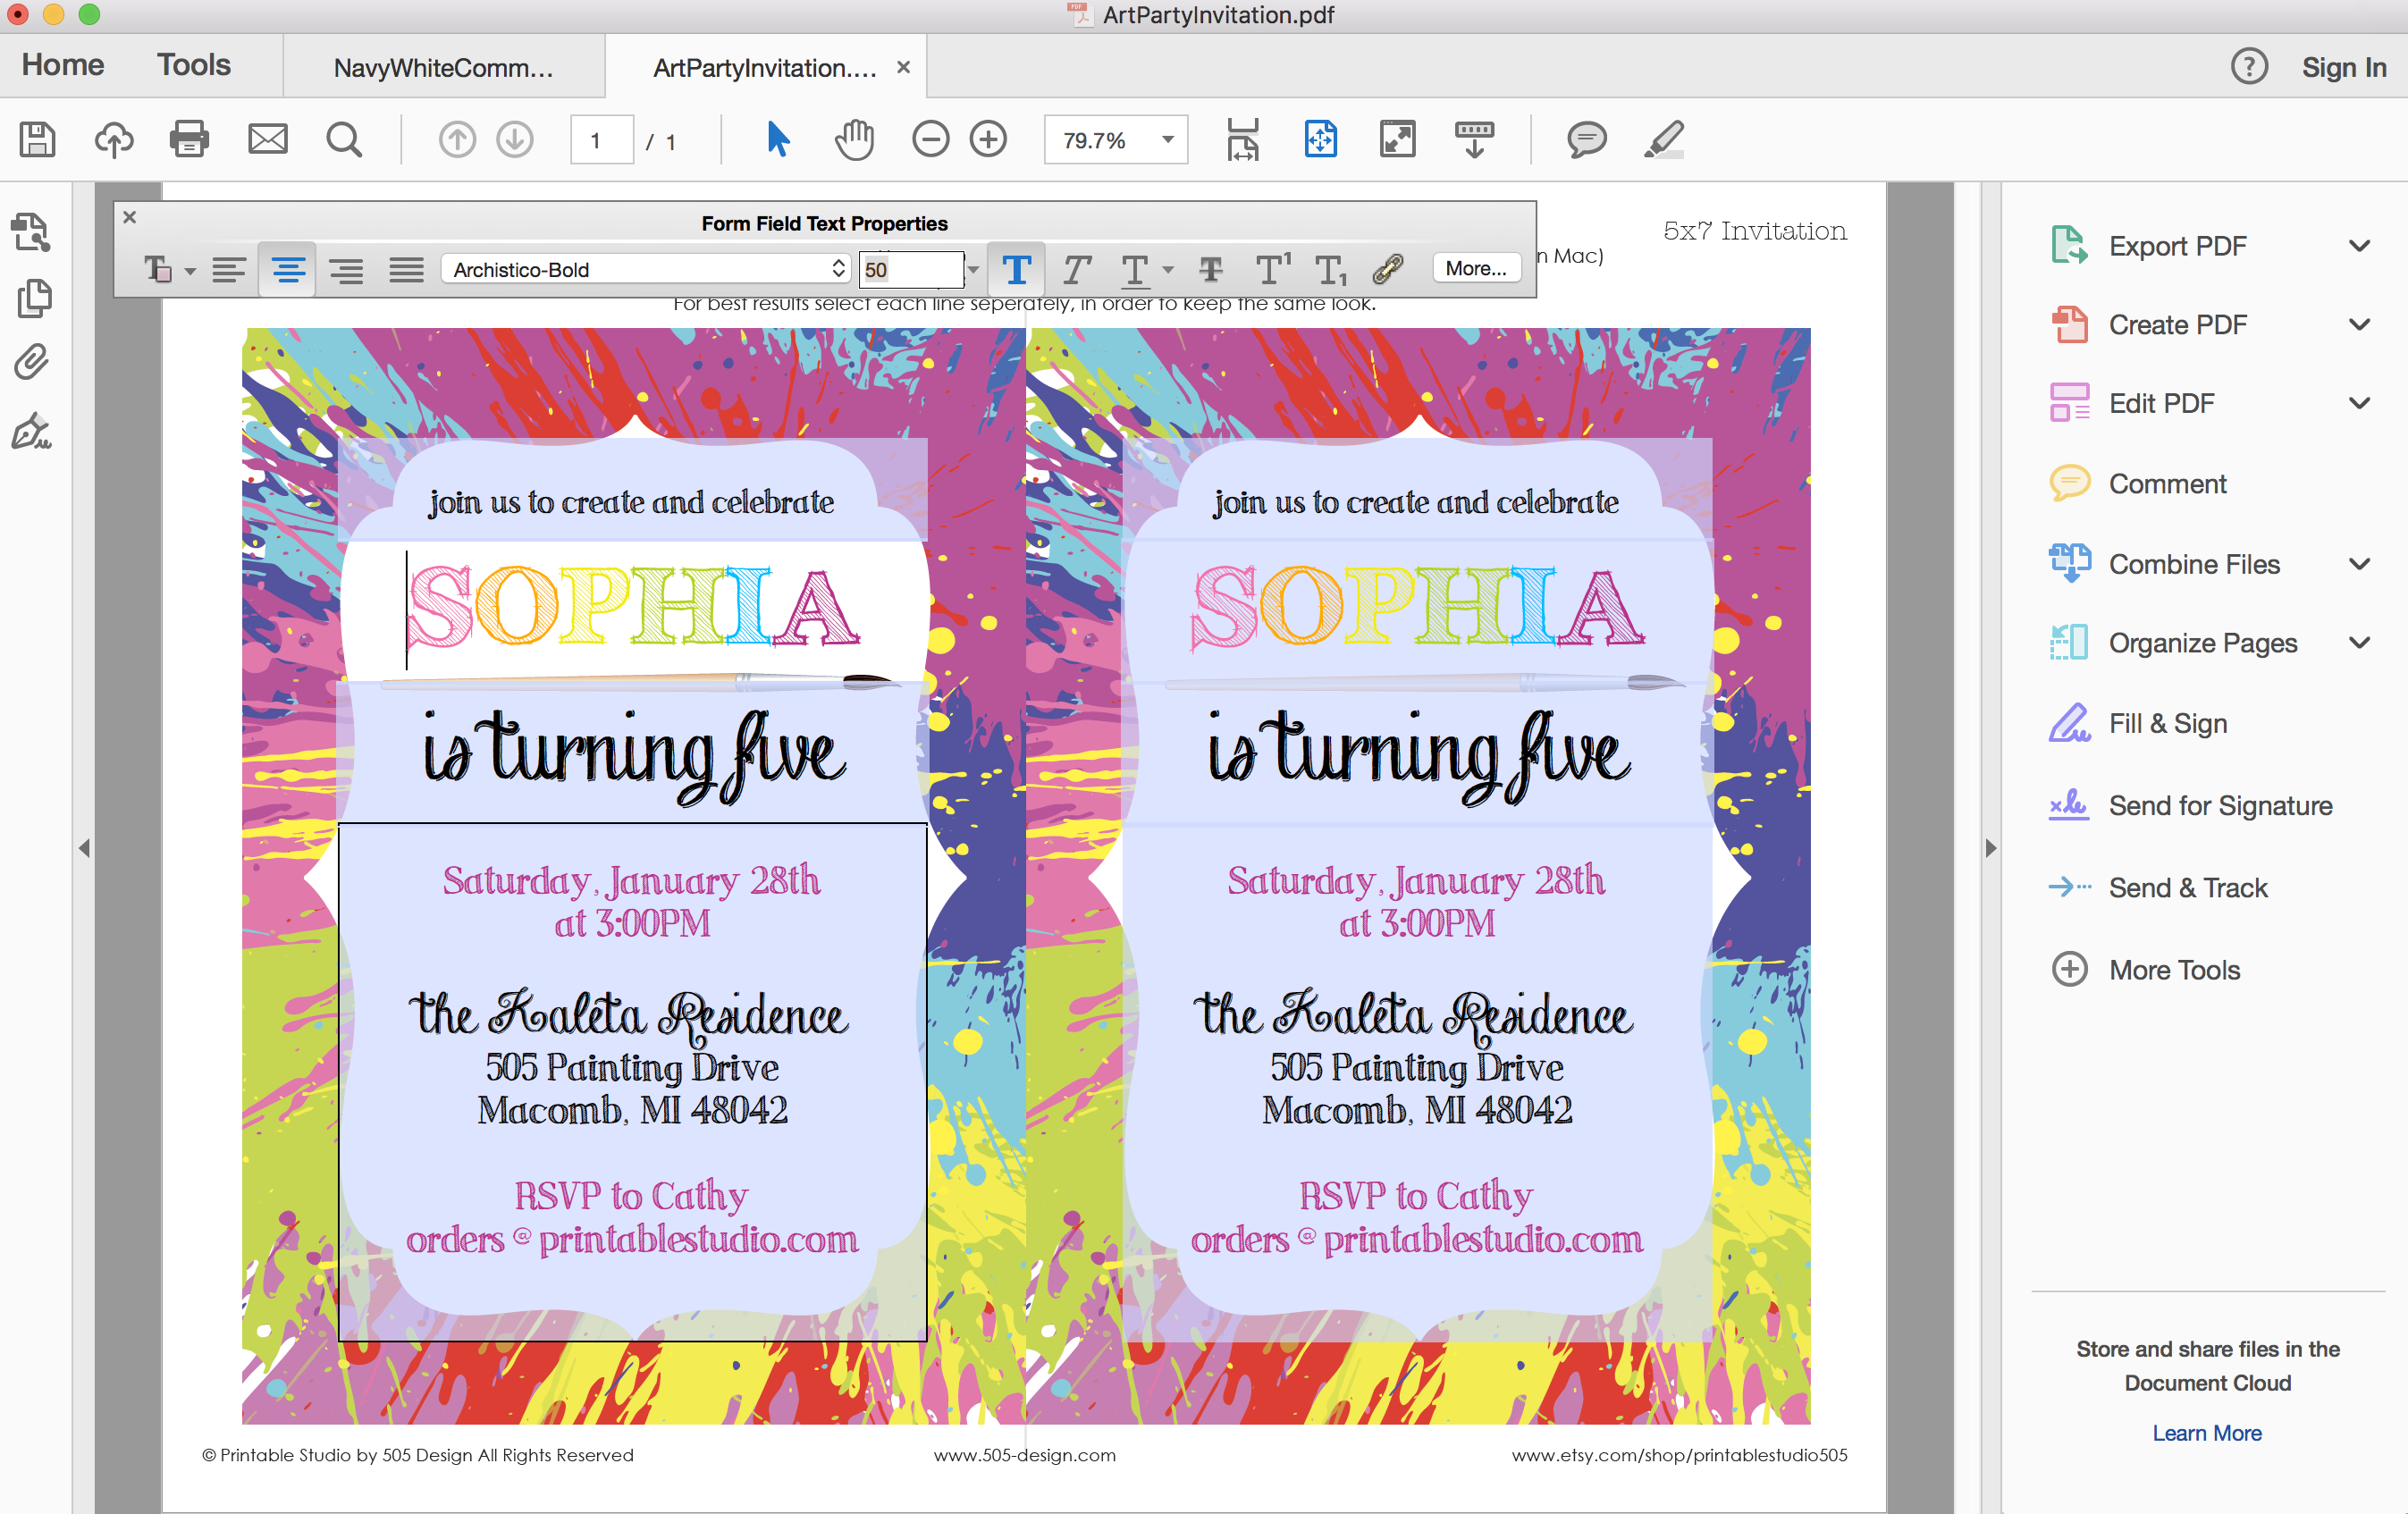 art party invitation painting party invitation printable studio